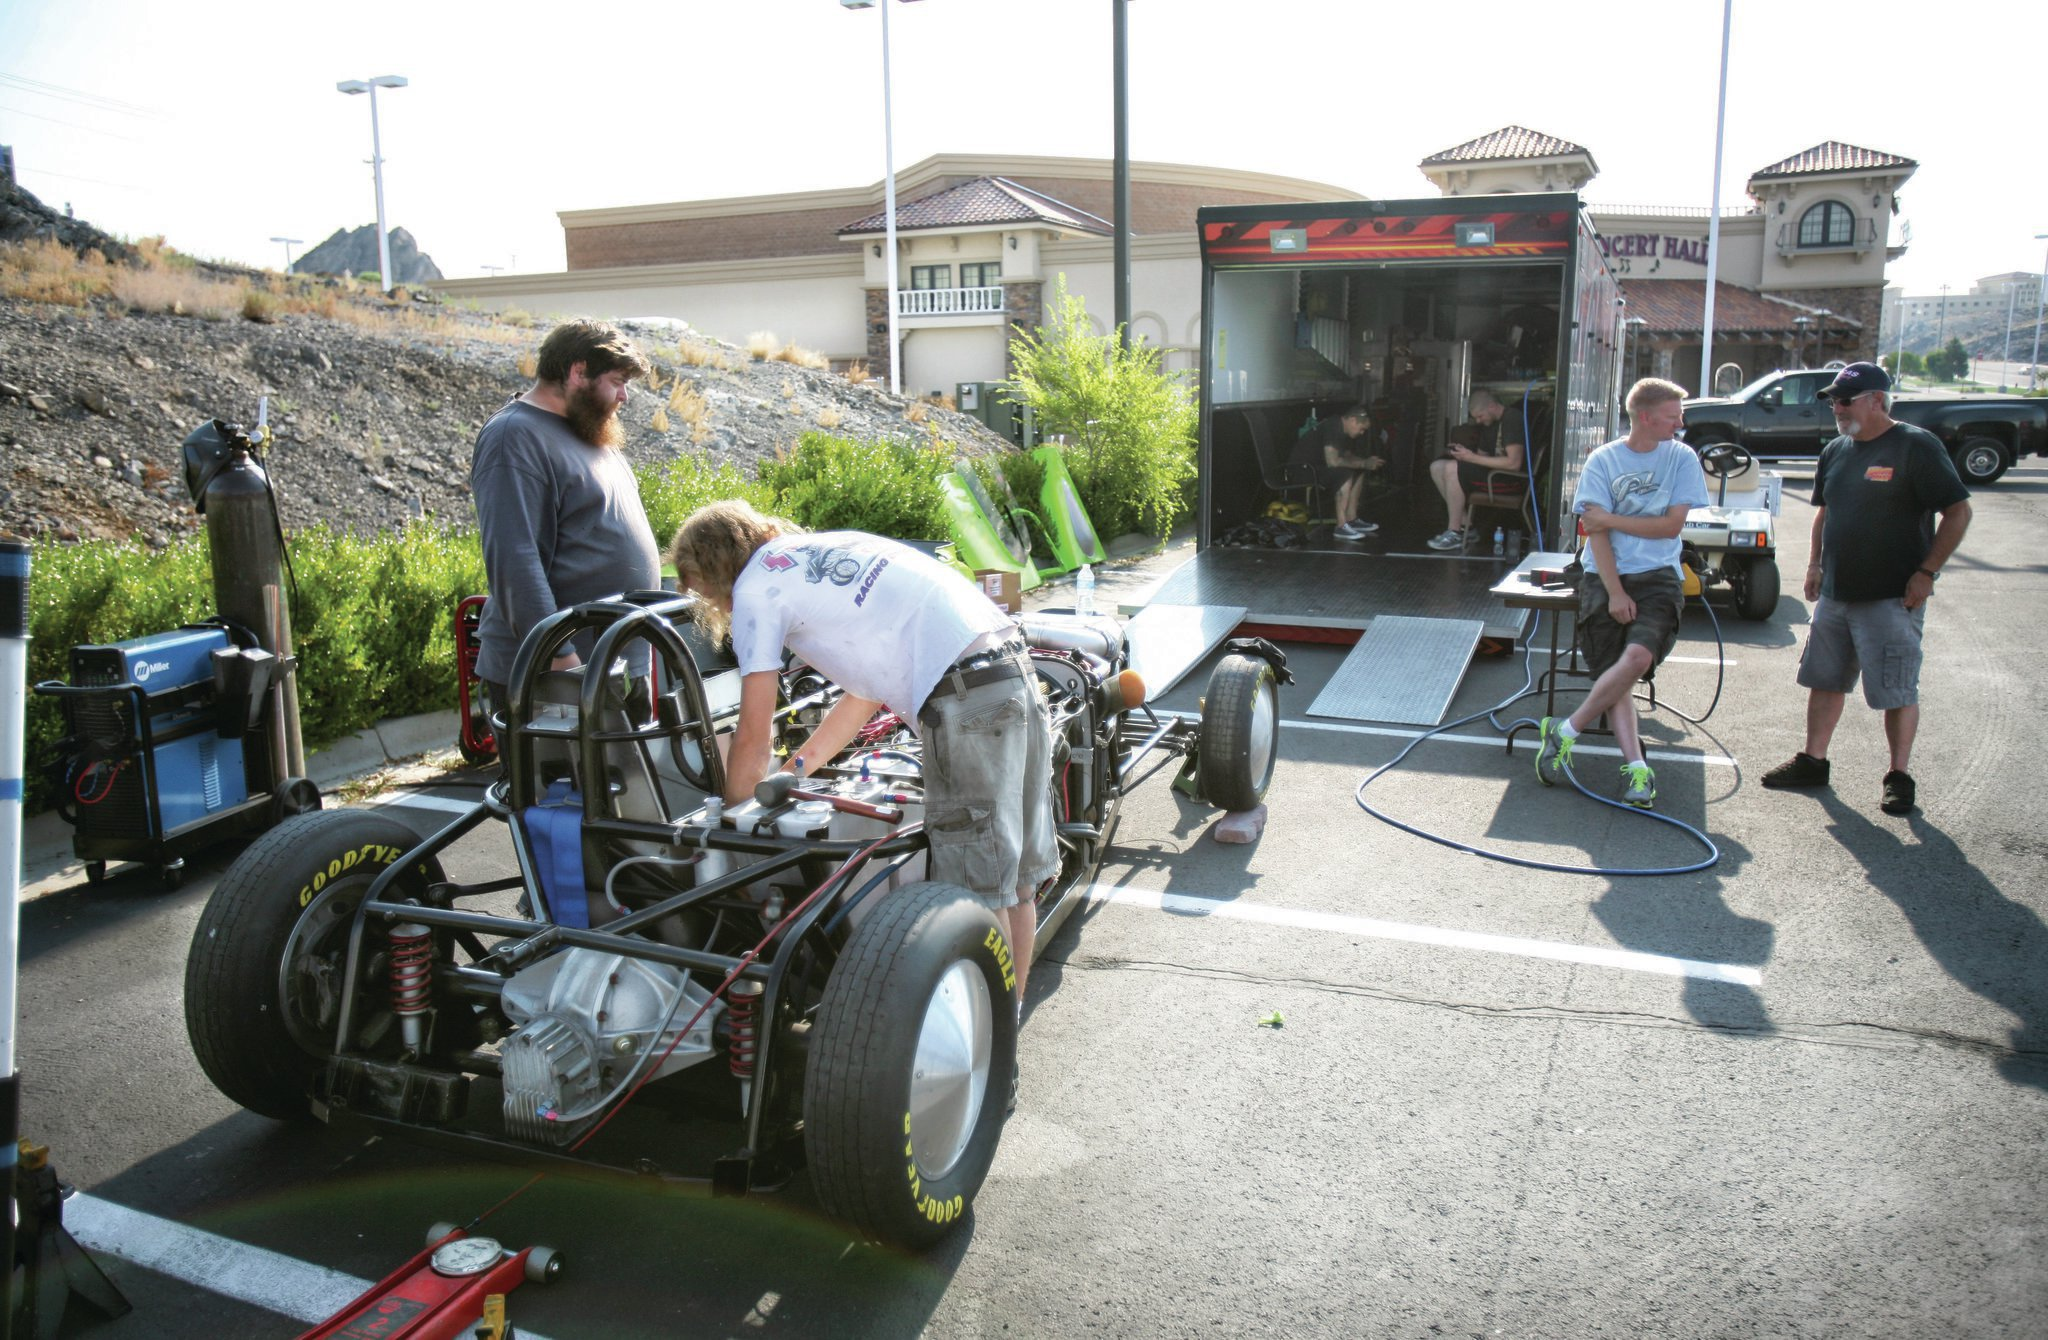 We were with Andy Leach, Eric Hanson, Sam Kita, Eric Zouch, and the rest of the crew from Cal Creations when the word came through that Speed Week was canceled. The team had traveled 1,000 miles with hopes of getting several members of the crew licensed.